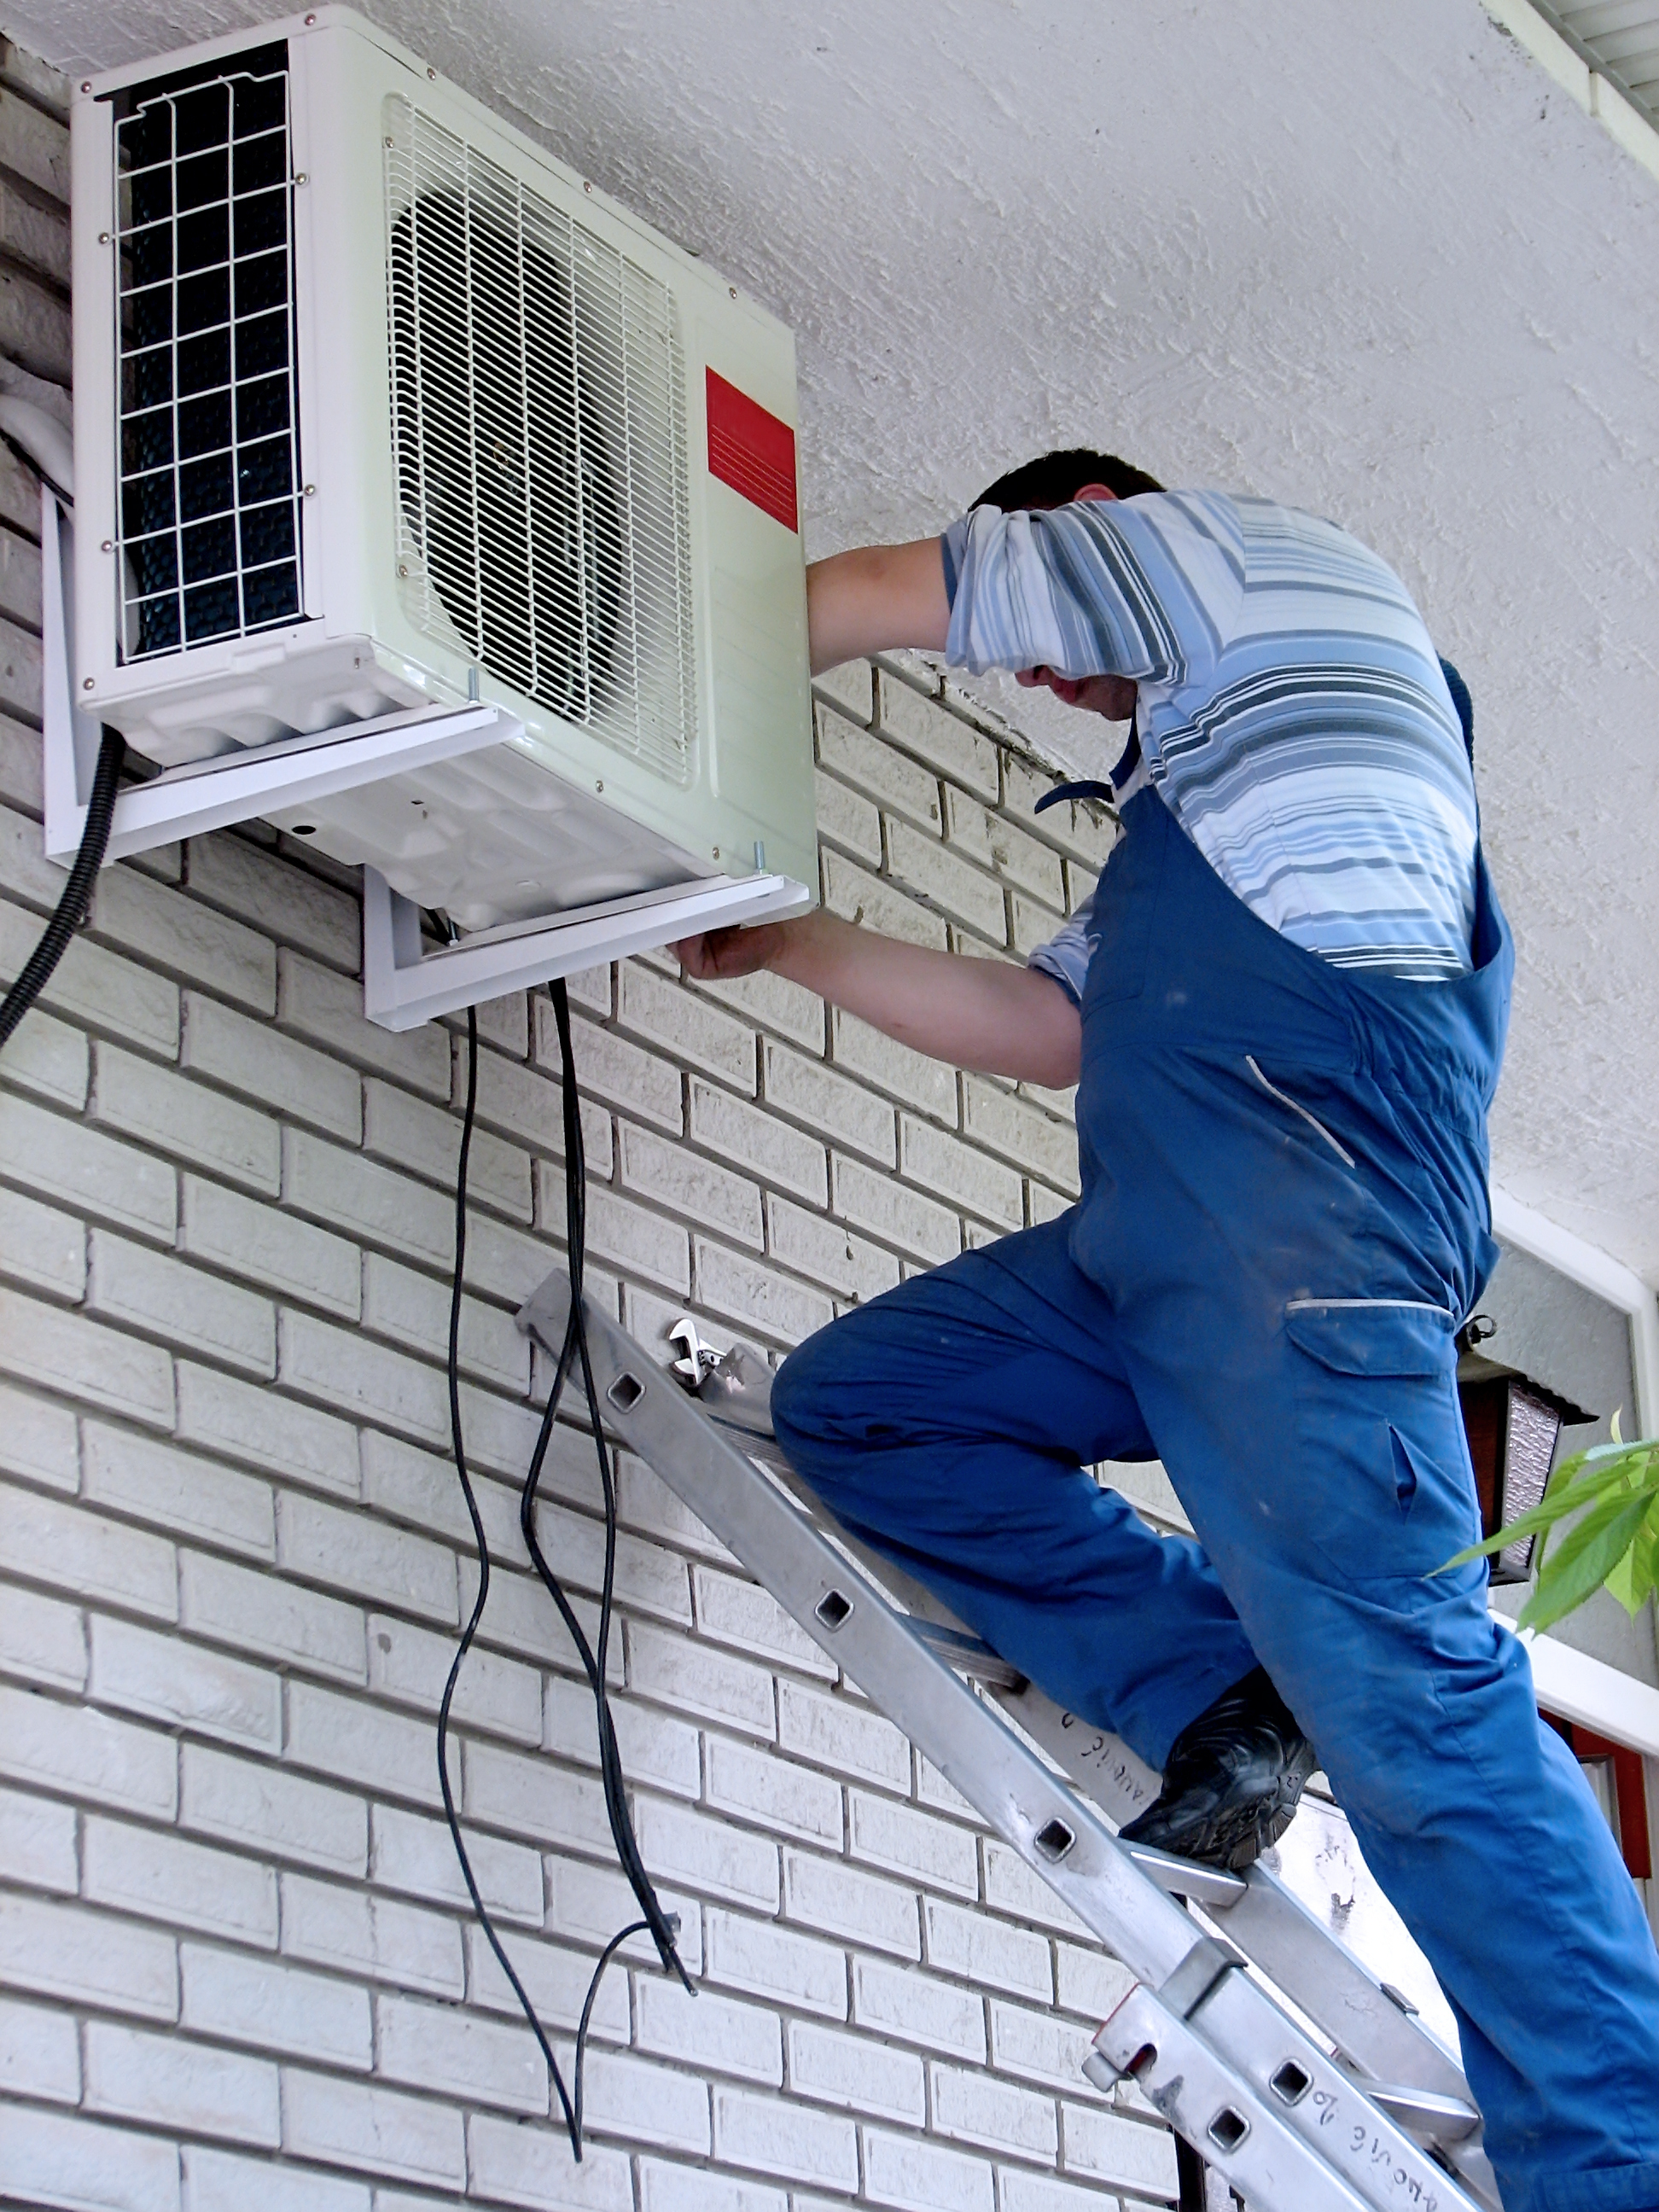 ac repair in tampa | citywide hvac services tampa florida